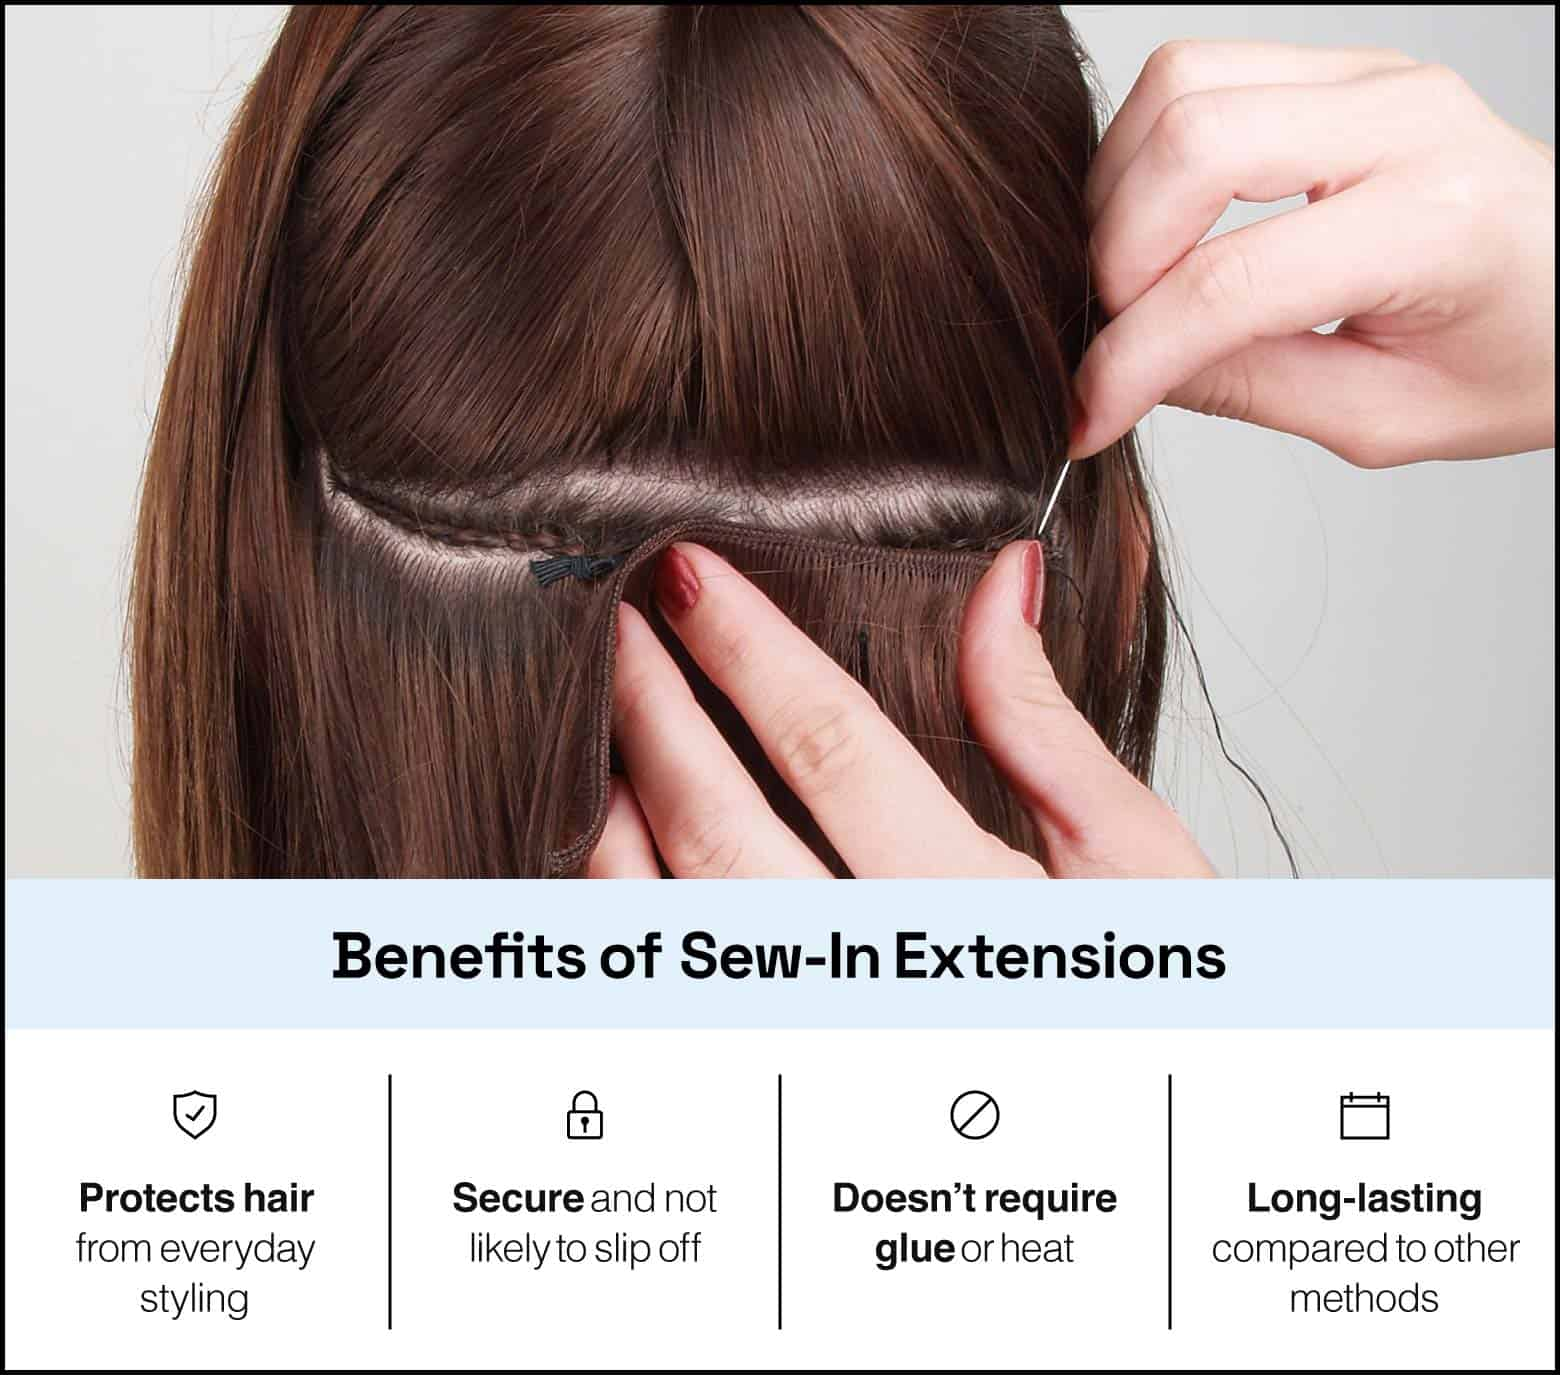 benefits of sew-in extensions